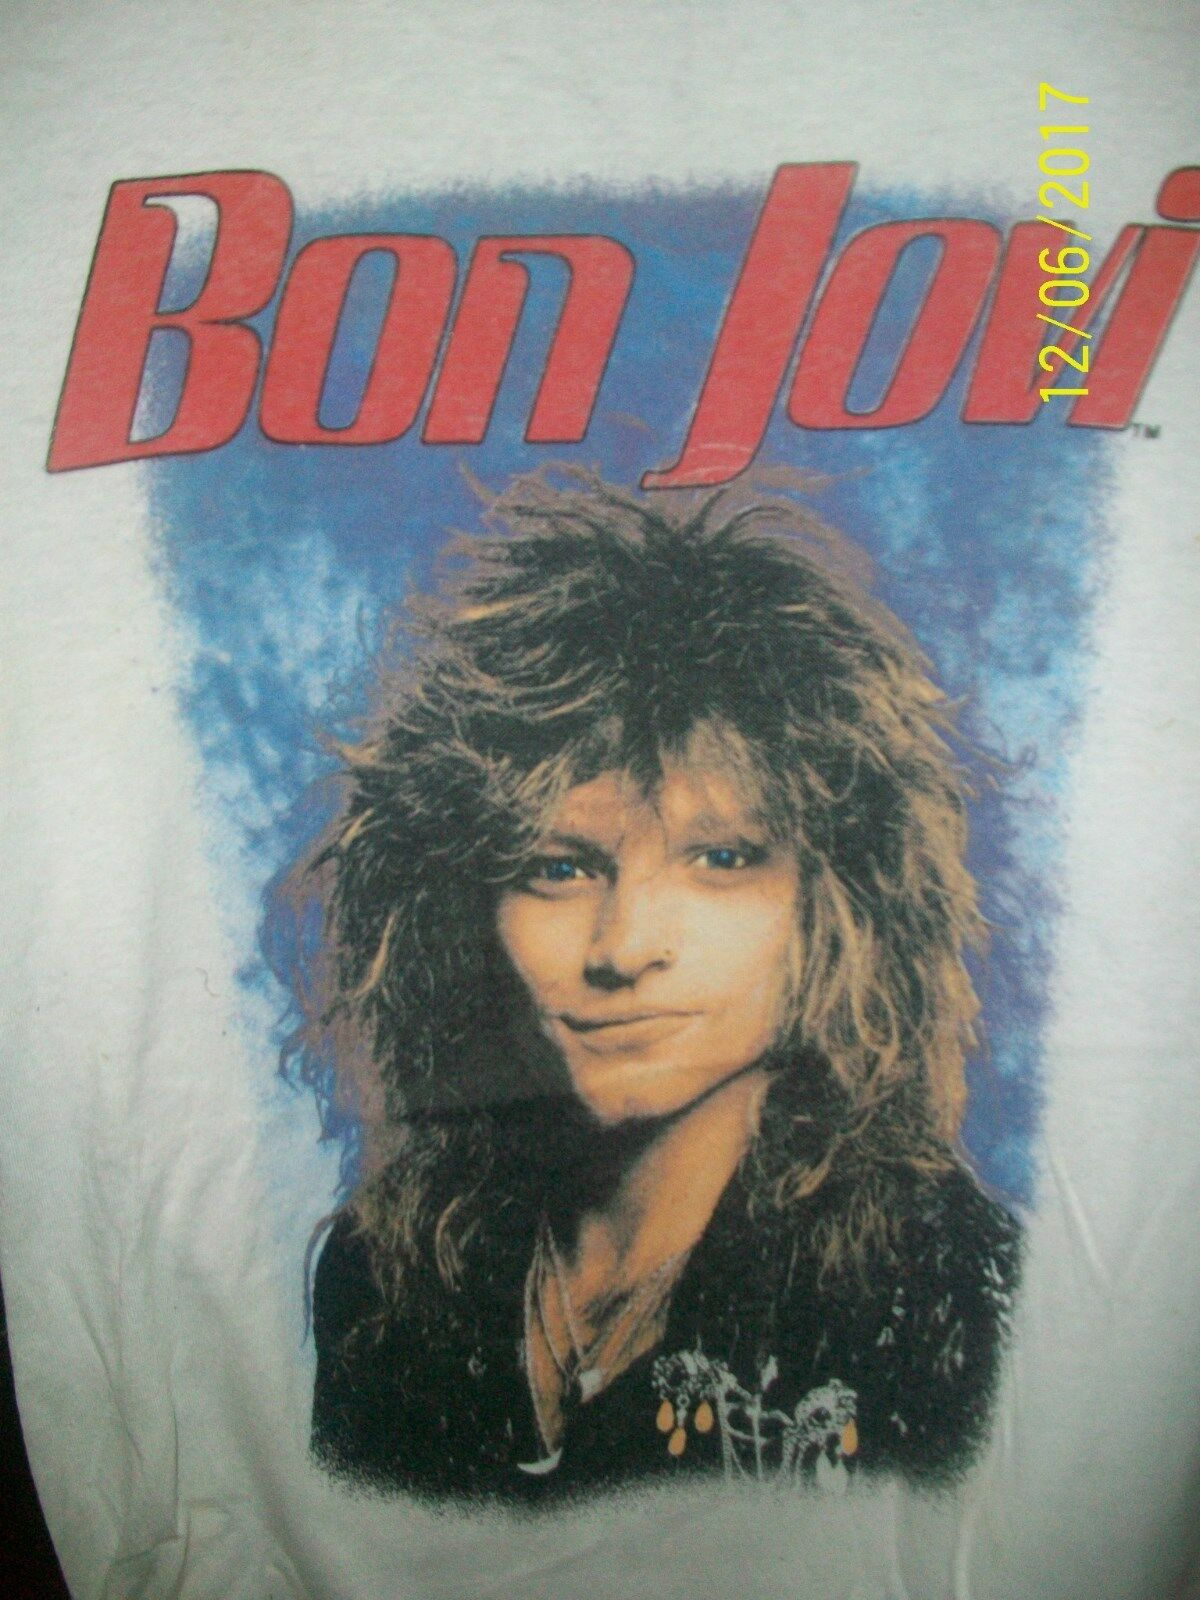 BON JOVI - 1986 SLIPPERY WHEN WET TOUR (never worn or washed)